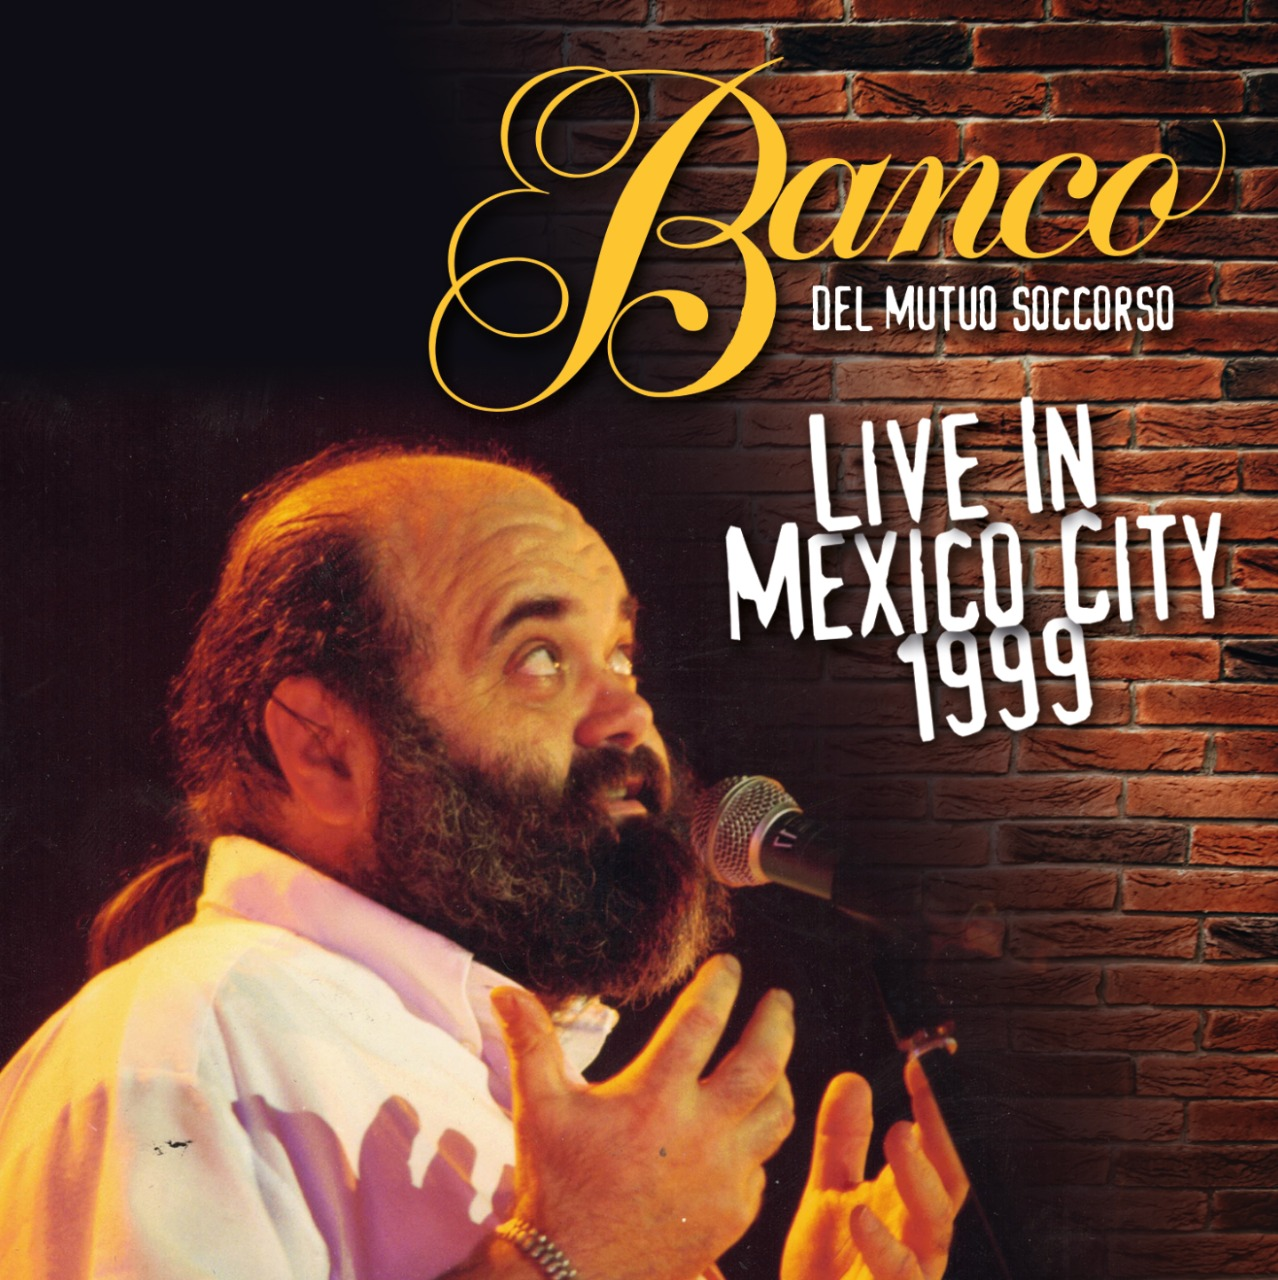 BANCO DEL MUTUO SOCCORSO- LIVE IN MÉXICO CITY 1999 (2cd) Remaste